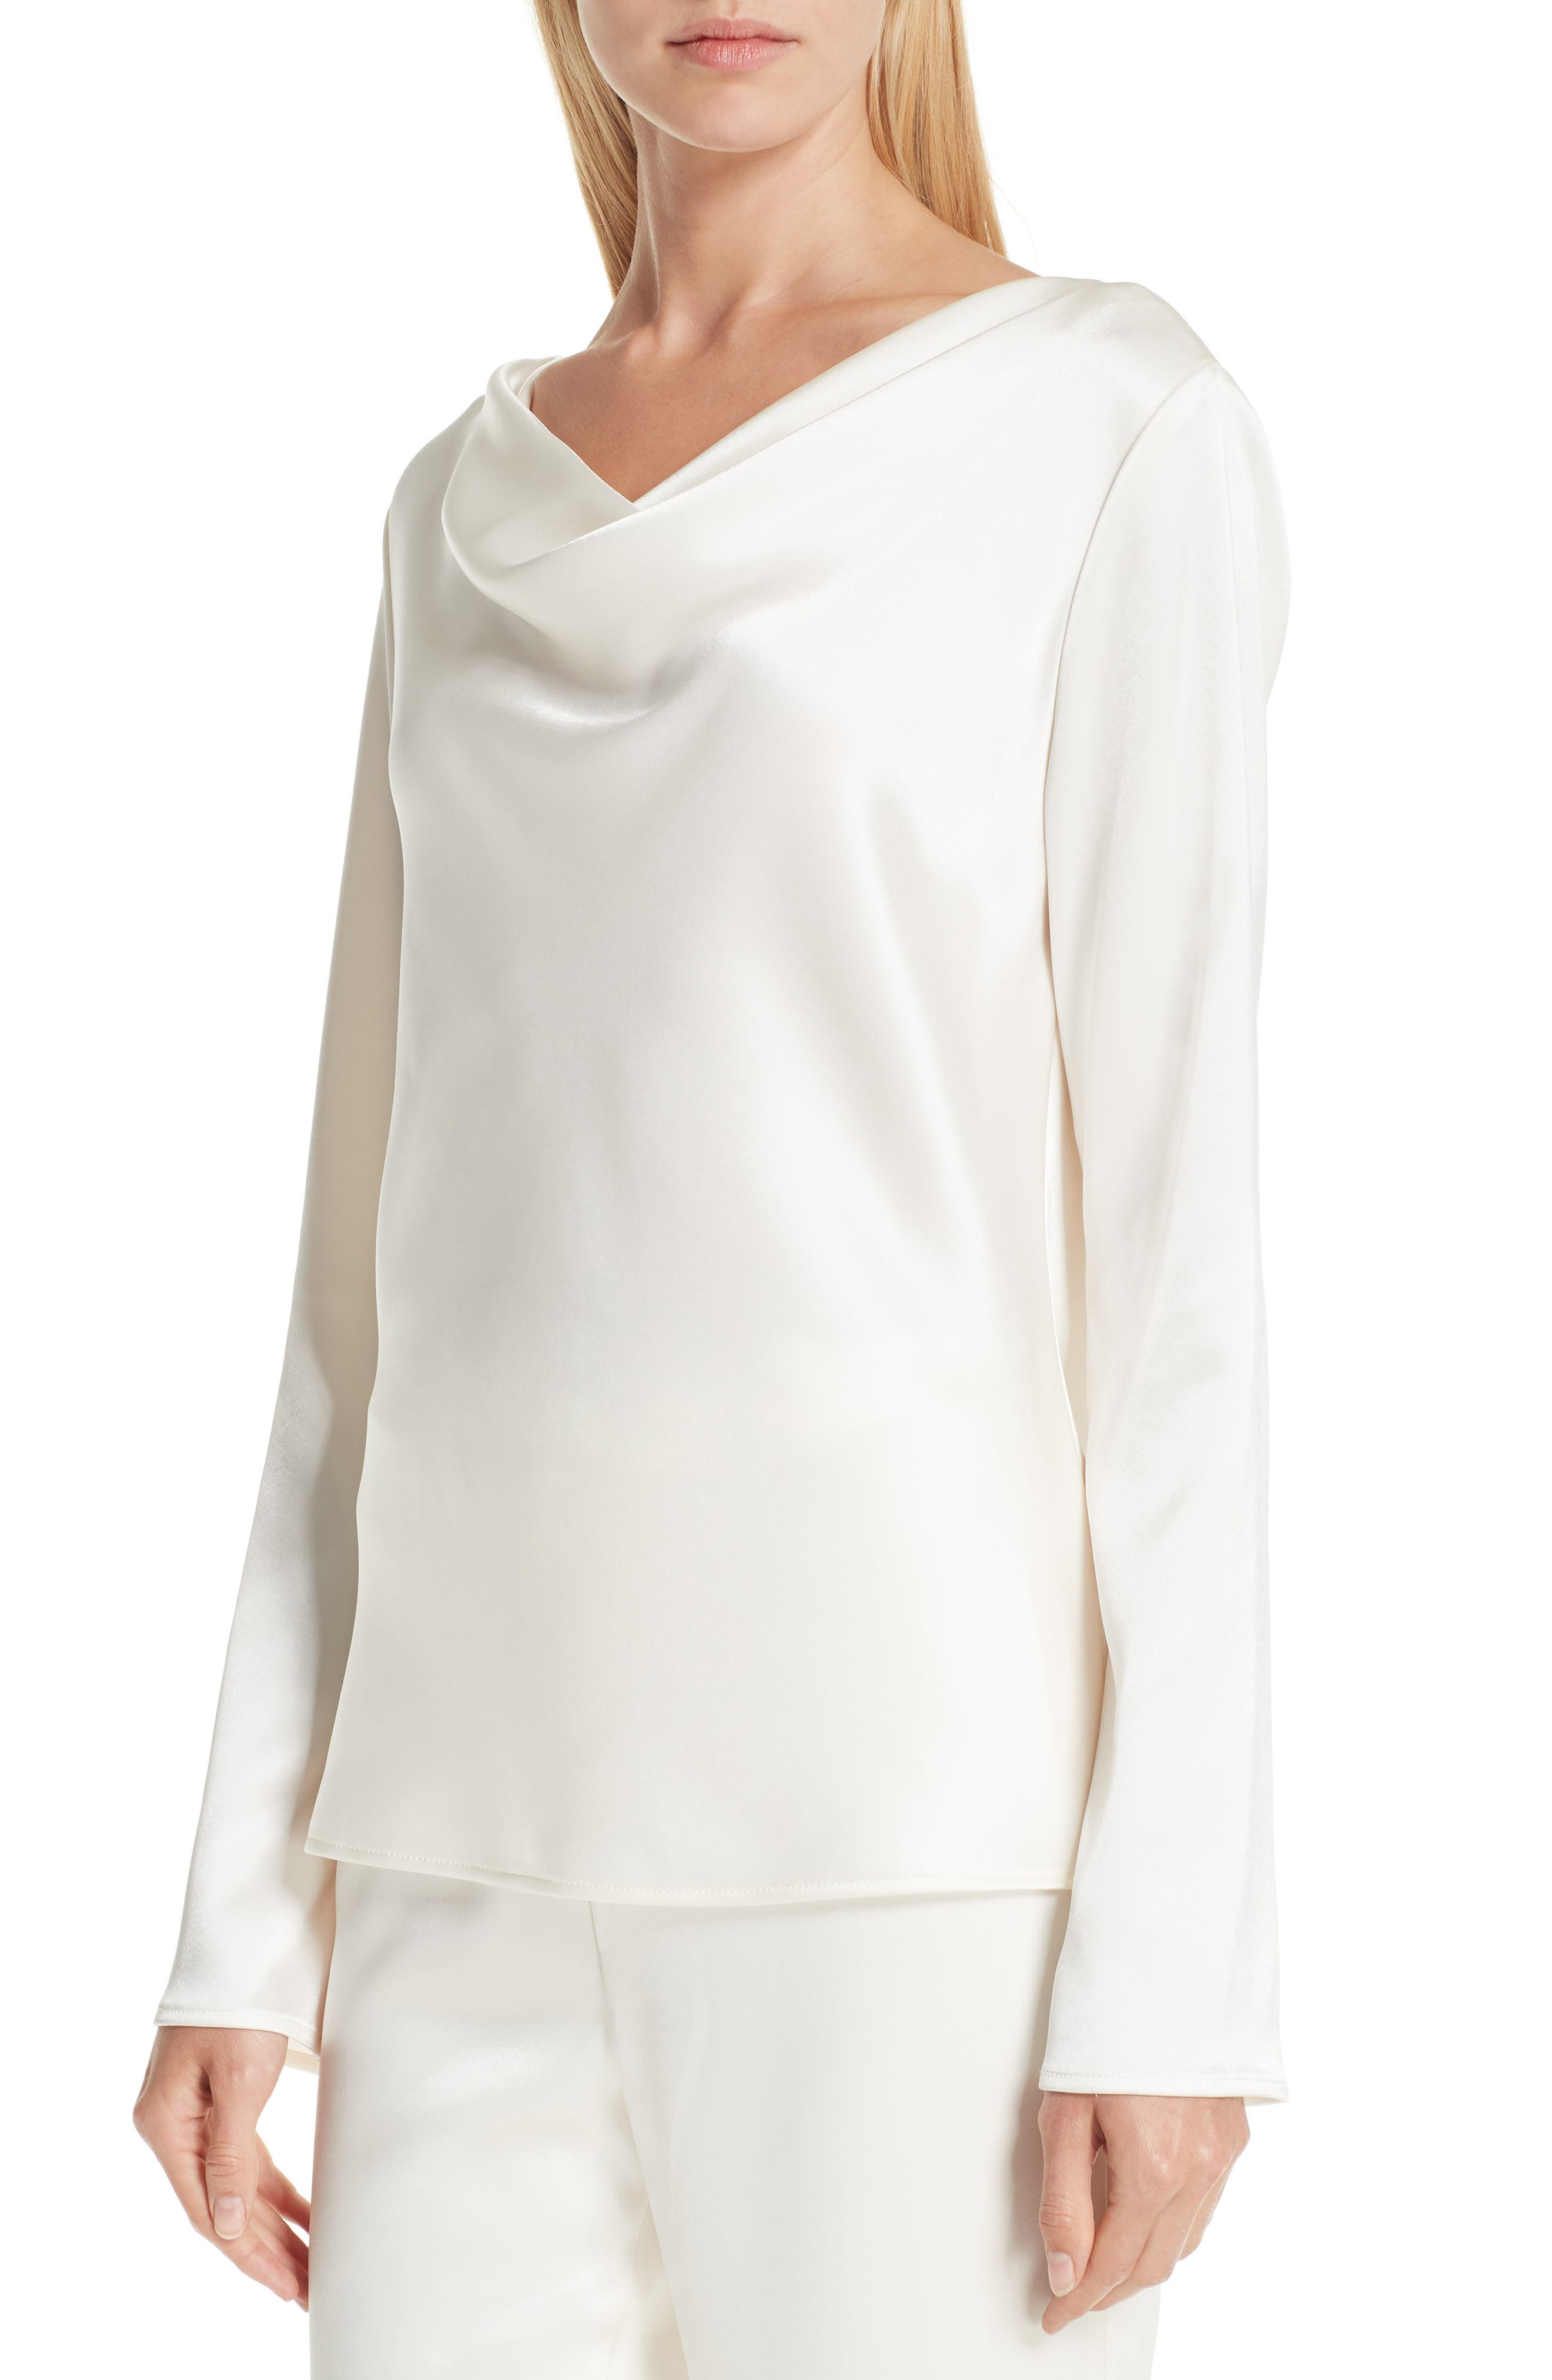 ST. JOHN COLLECTION,                             Satin Cowl Neck Blouse,                             Alternate thumbnail 4, color,                             CREAM